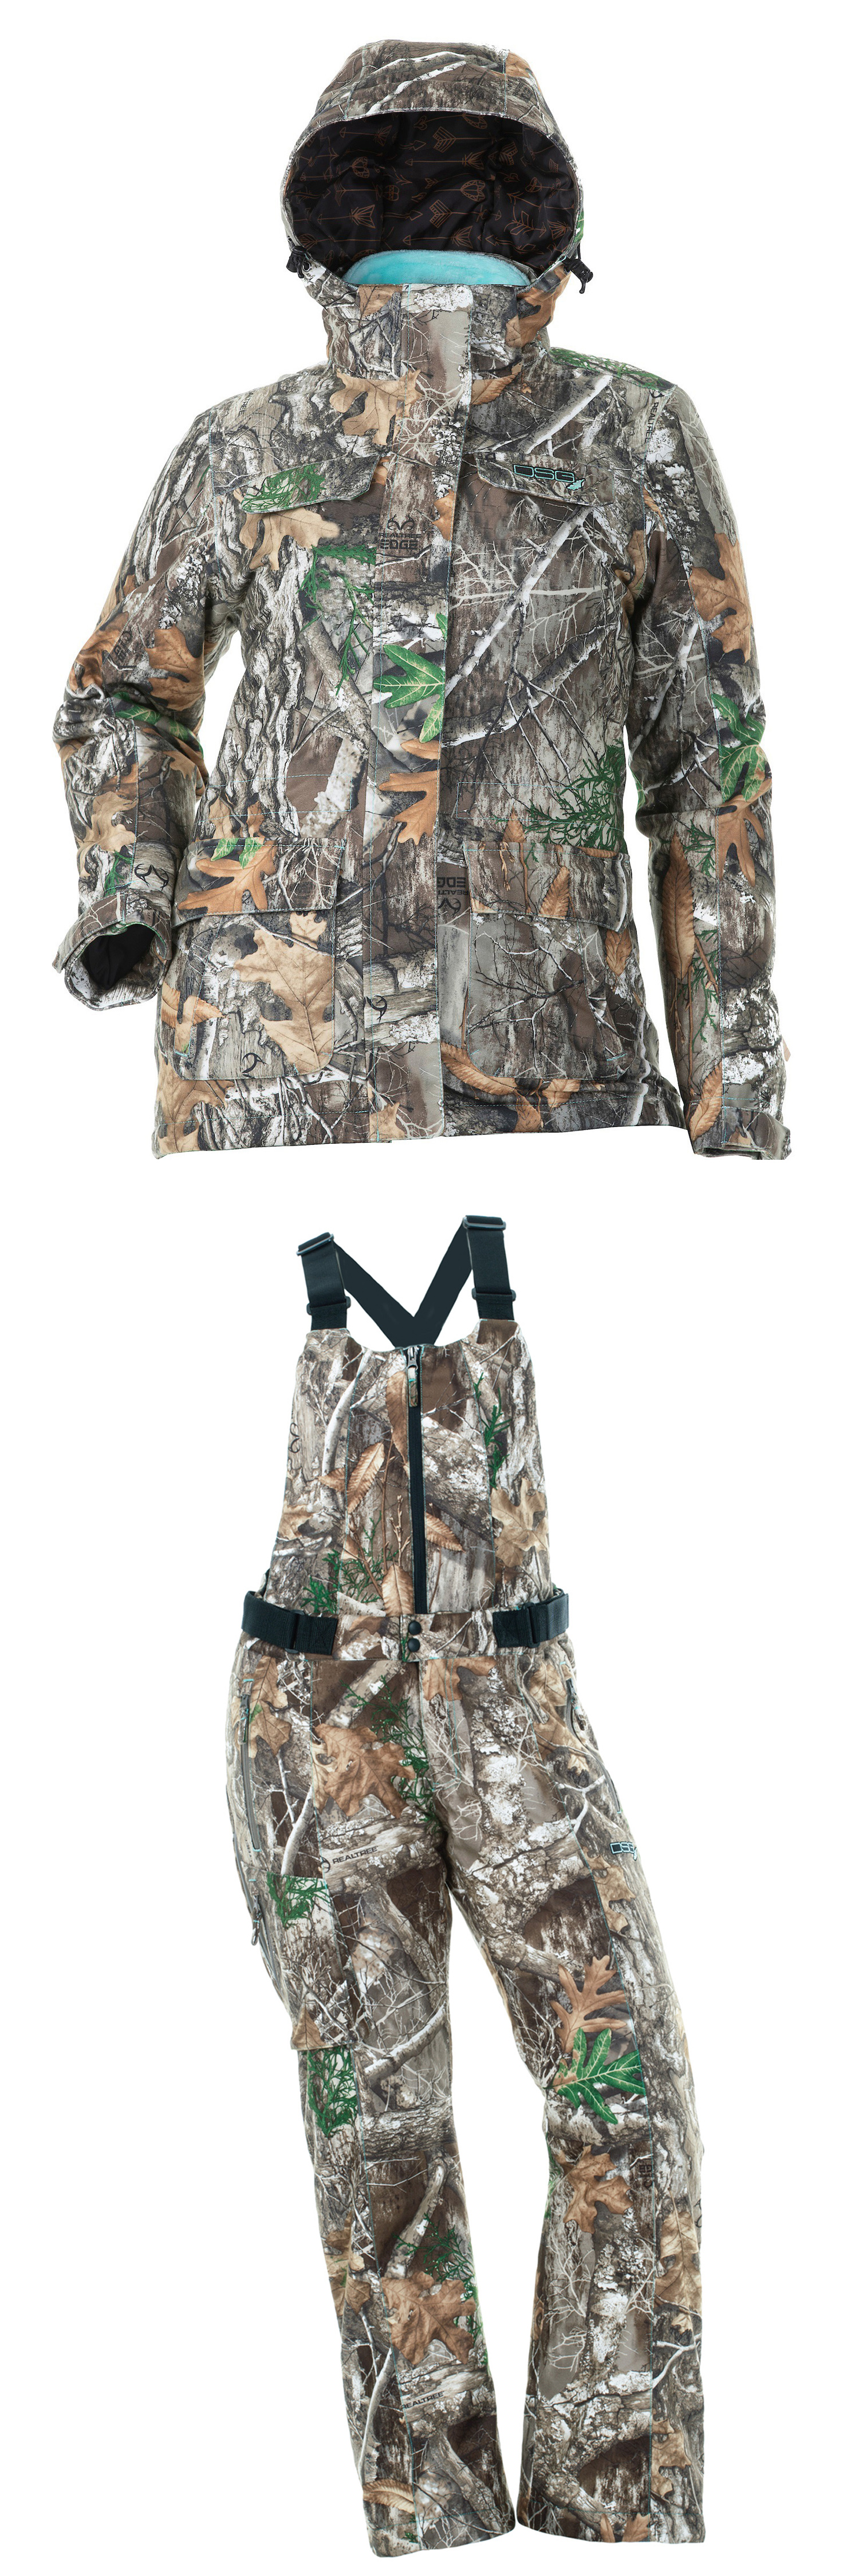 New DSG Outerwear Kylie 3.0 Set camo clothing, Hunting, hunting apparel Hunting News